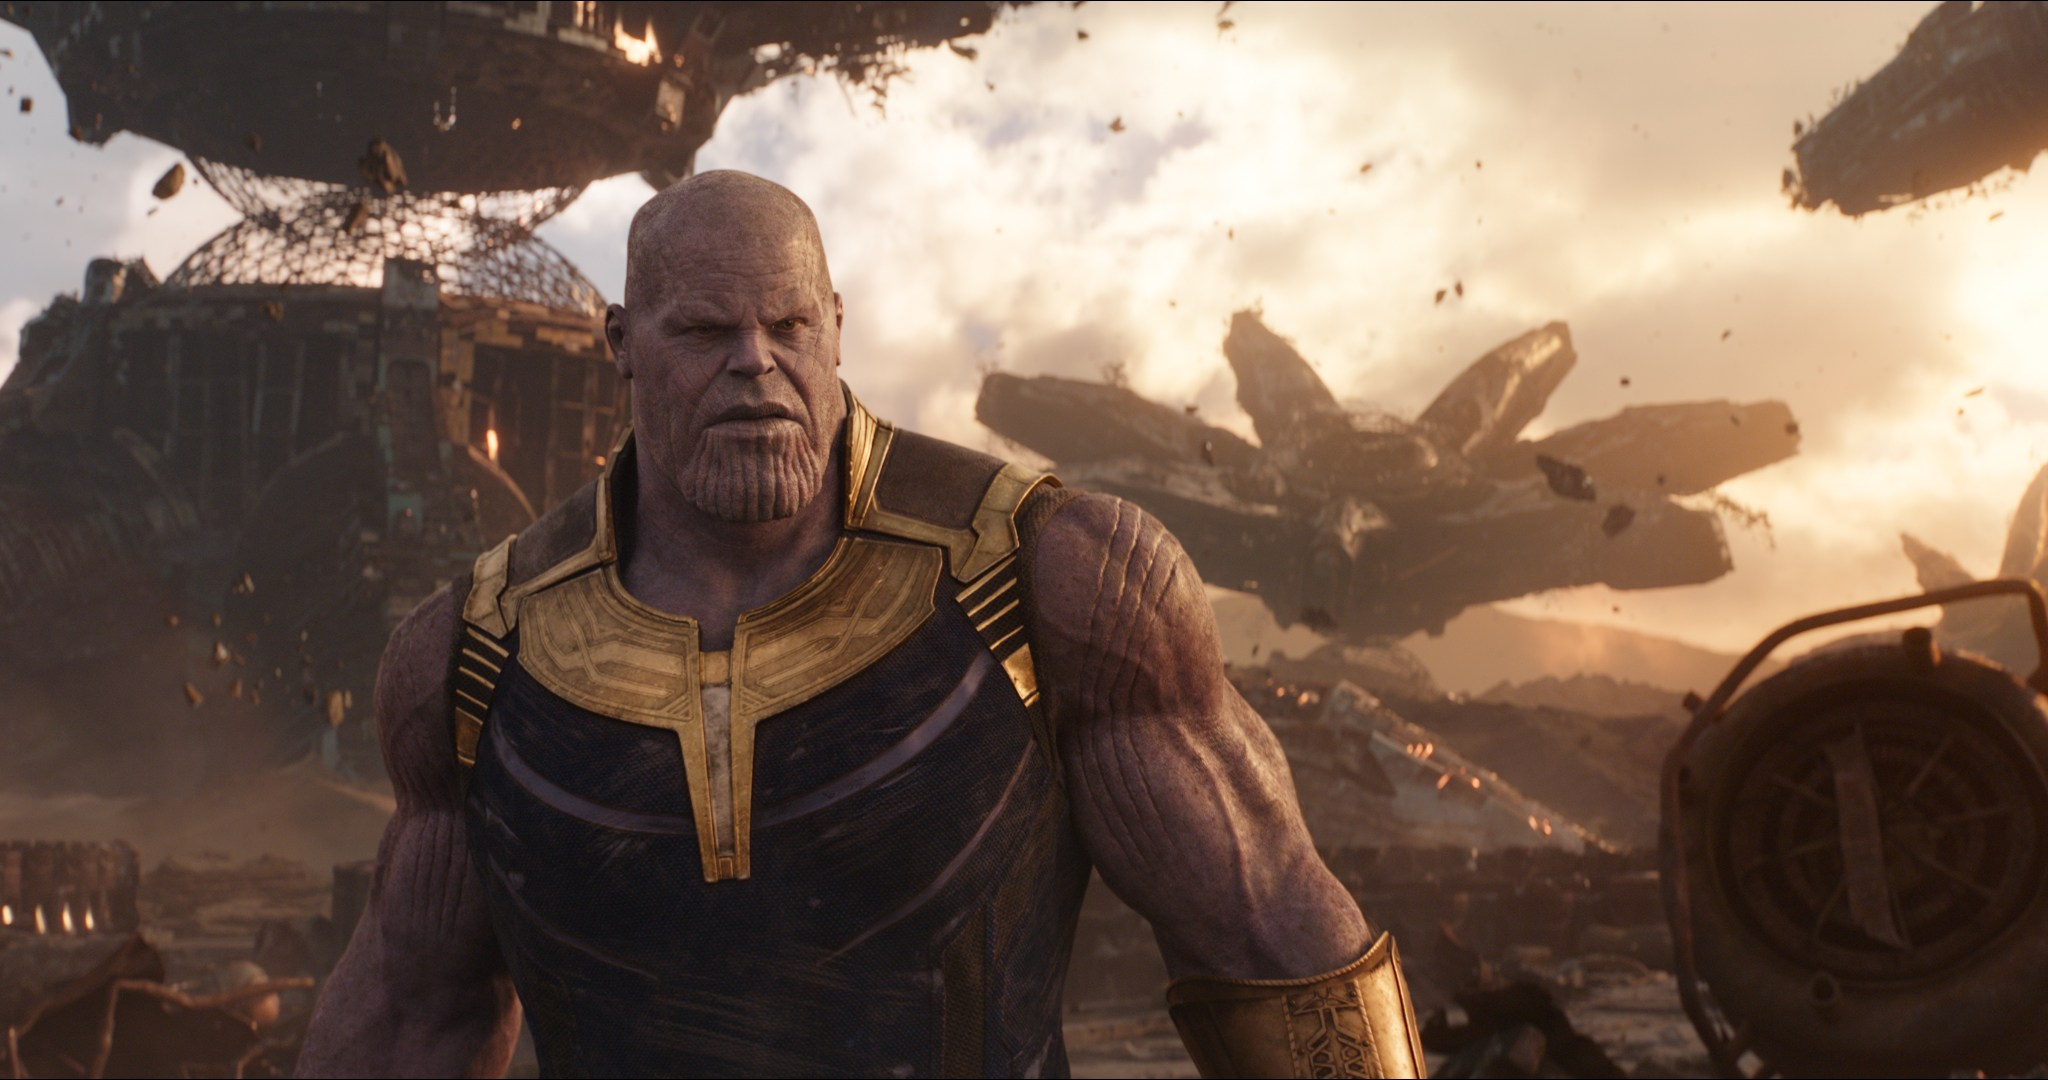 Thanos In Avengers Infinity War - Avengers Infinity War Thanos - Wallpapers, thanos wallpaper, thanos images, thanos hd free wallpapers, Thanos HD, Thanos, famous thanos quotes wallpaper, avengers-wallpapers, Avengers Infinity War, avenger wallpapers, 4k